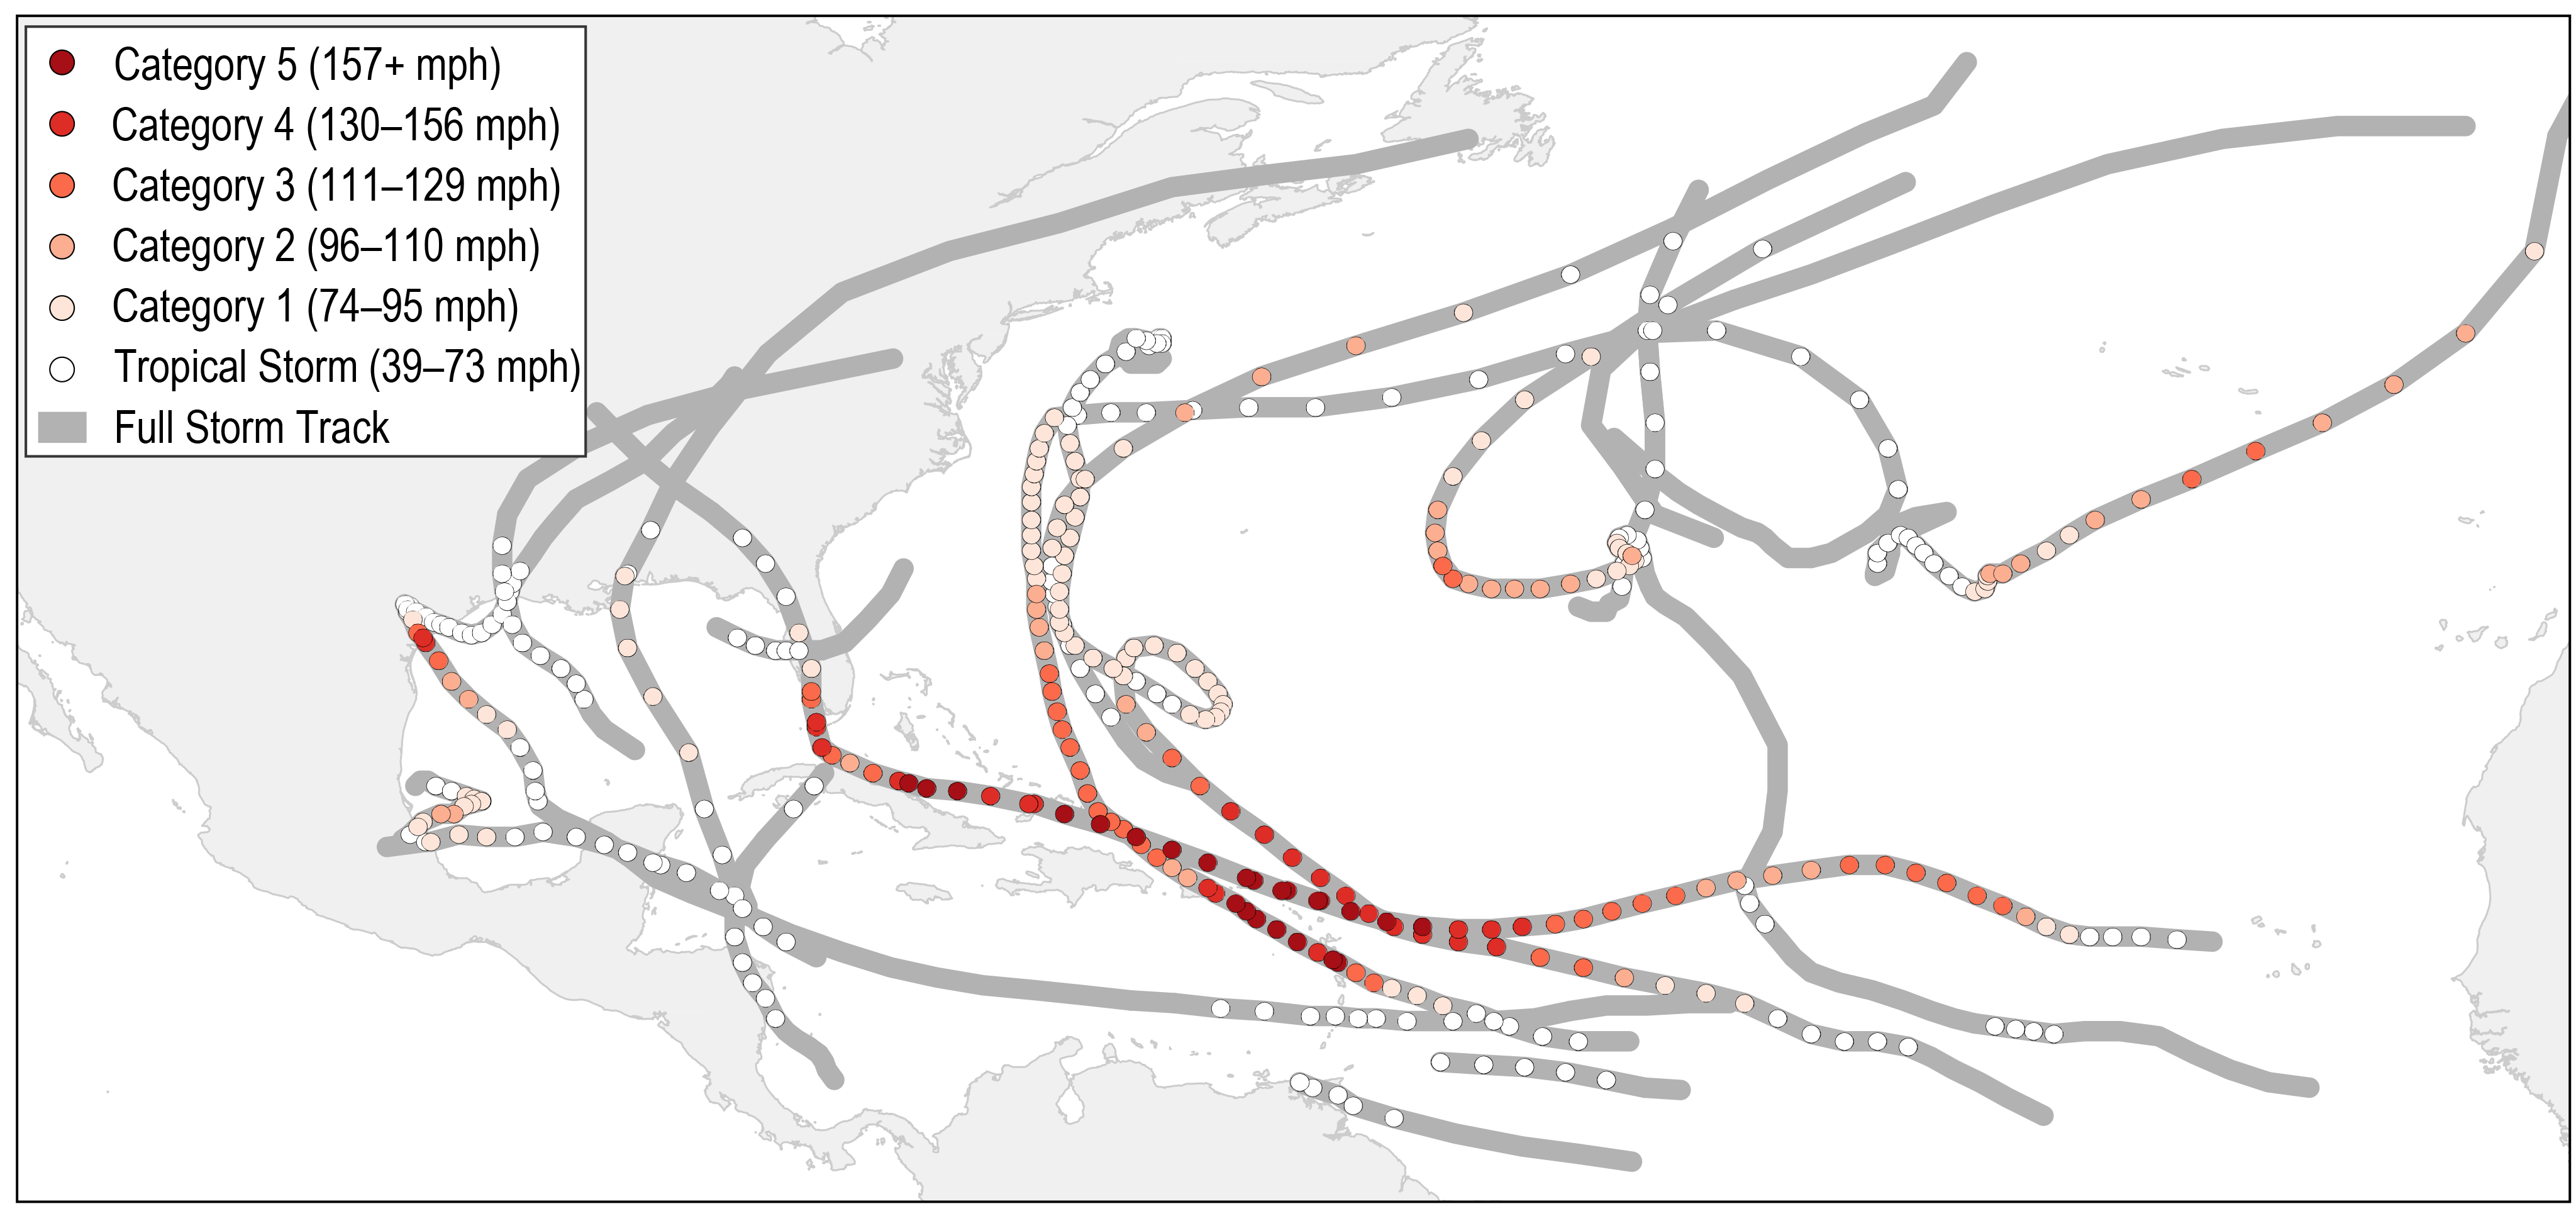 cdede74d1f85 Figure 2.8  Tropical cyclone tracks for the 2017 Atlantic hurricane season.  Data are based on the preliminary  operational best-track  provided by the  NOAA ...